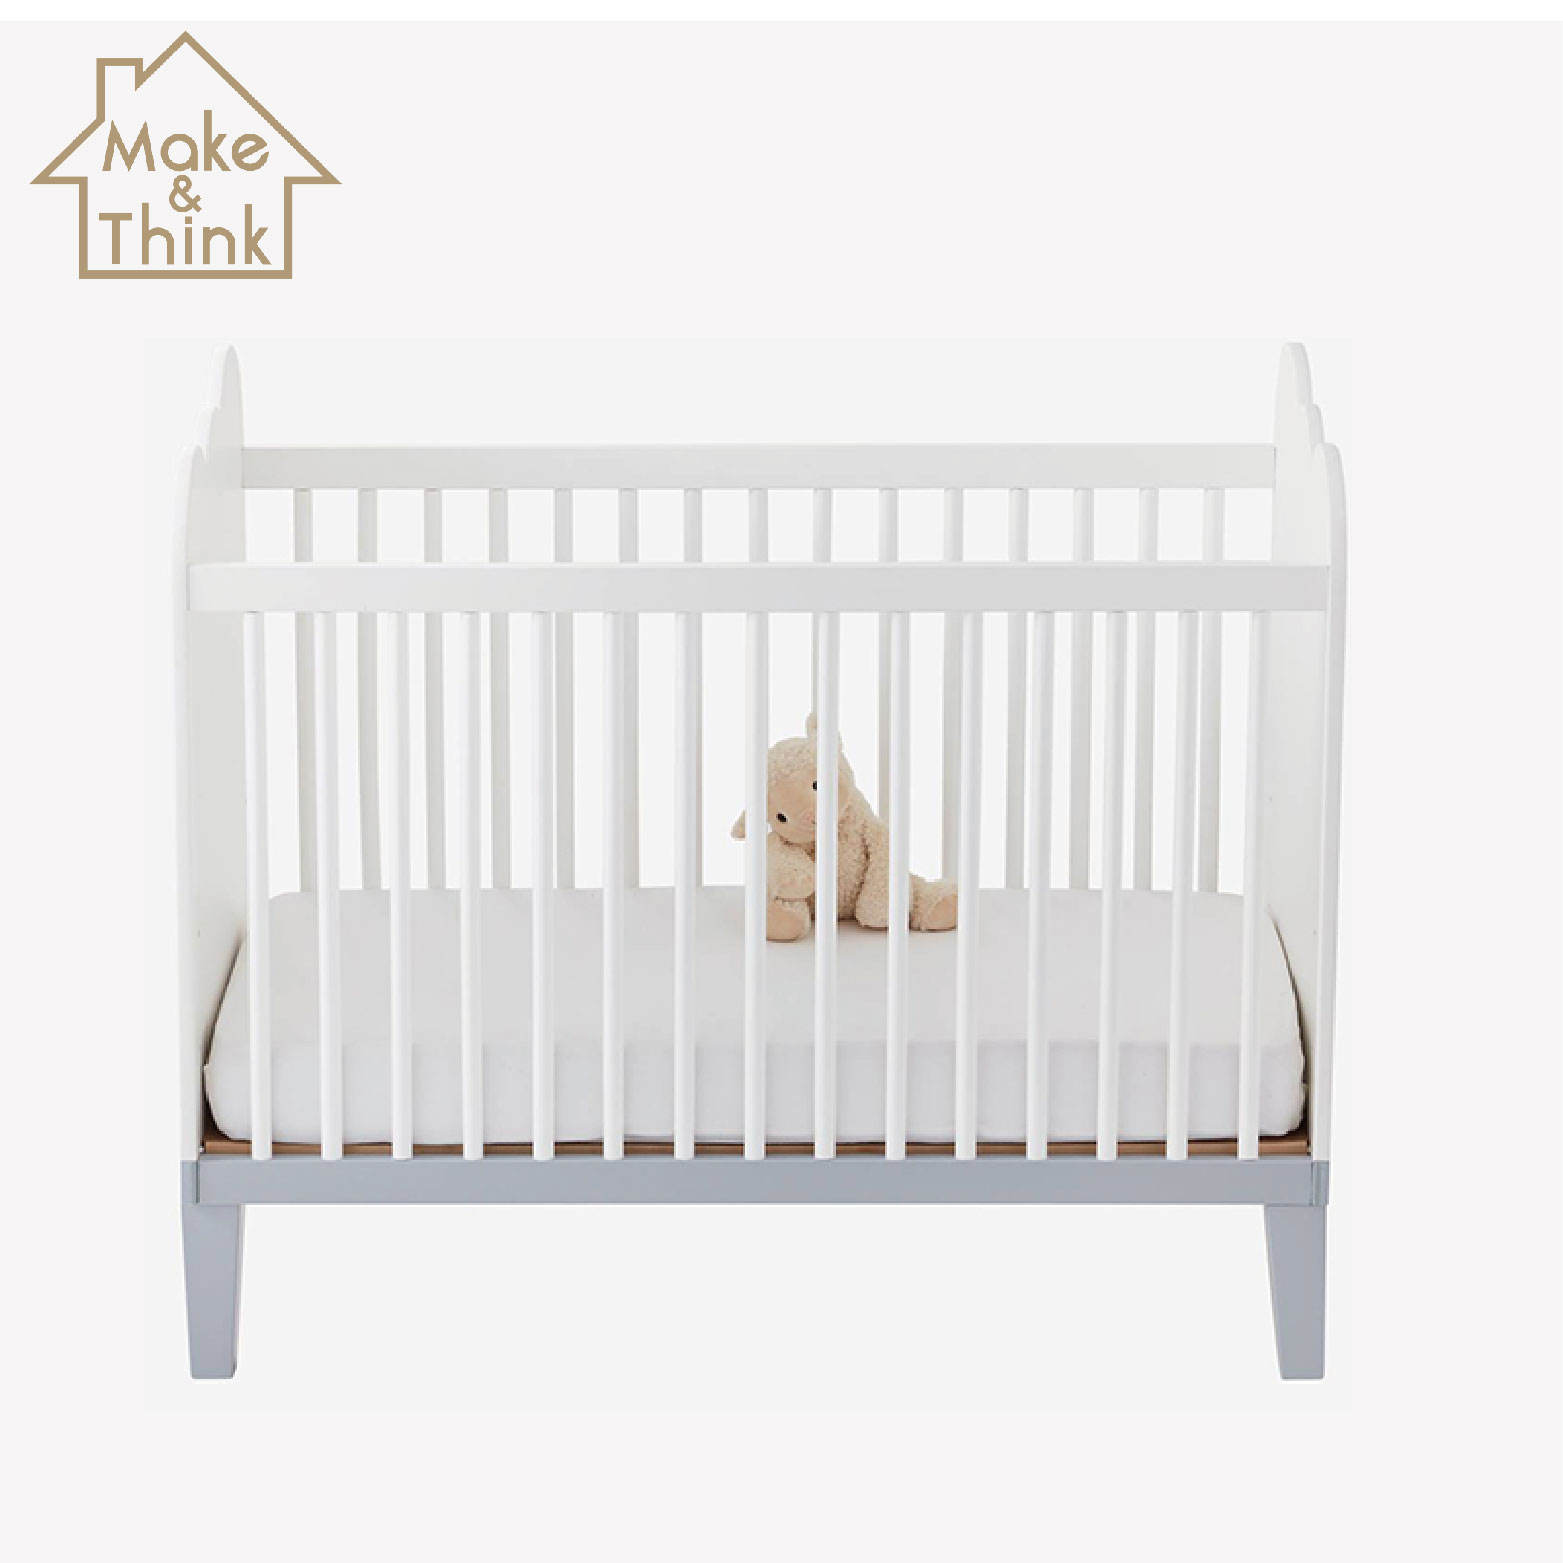 Multifunction solid wooden small newborn playpen cot baby cribs bed designs